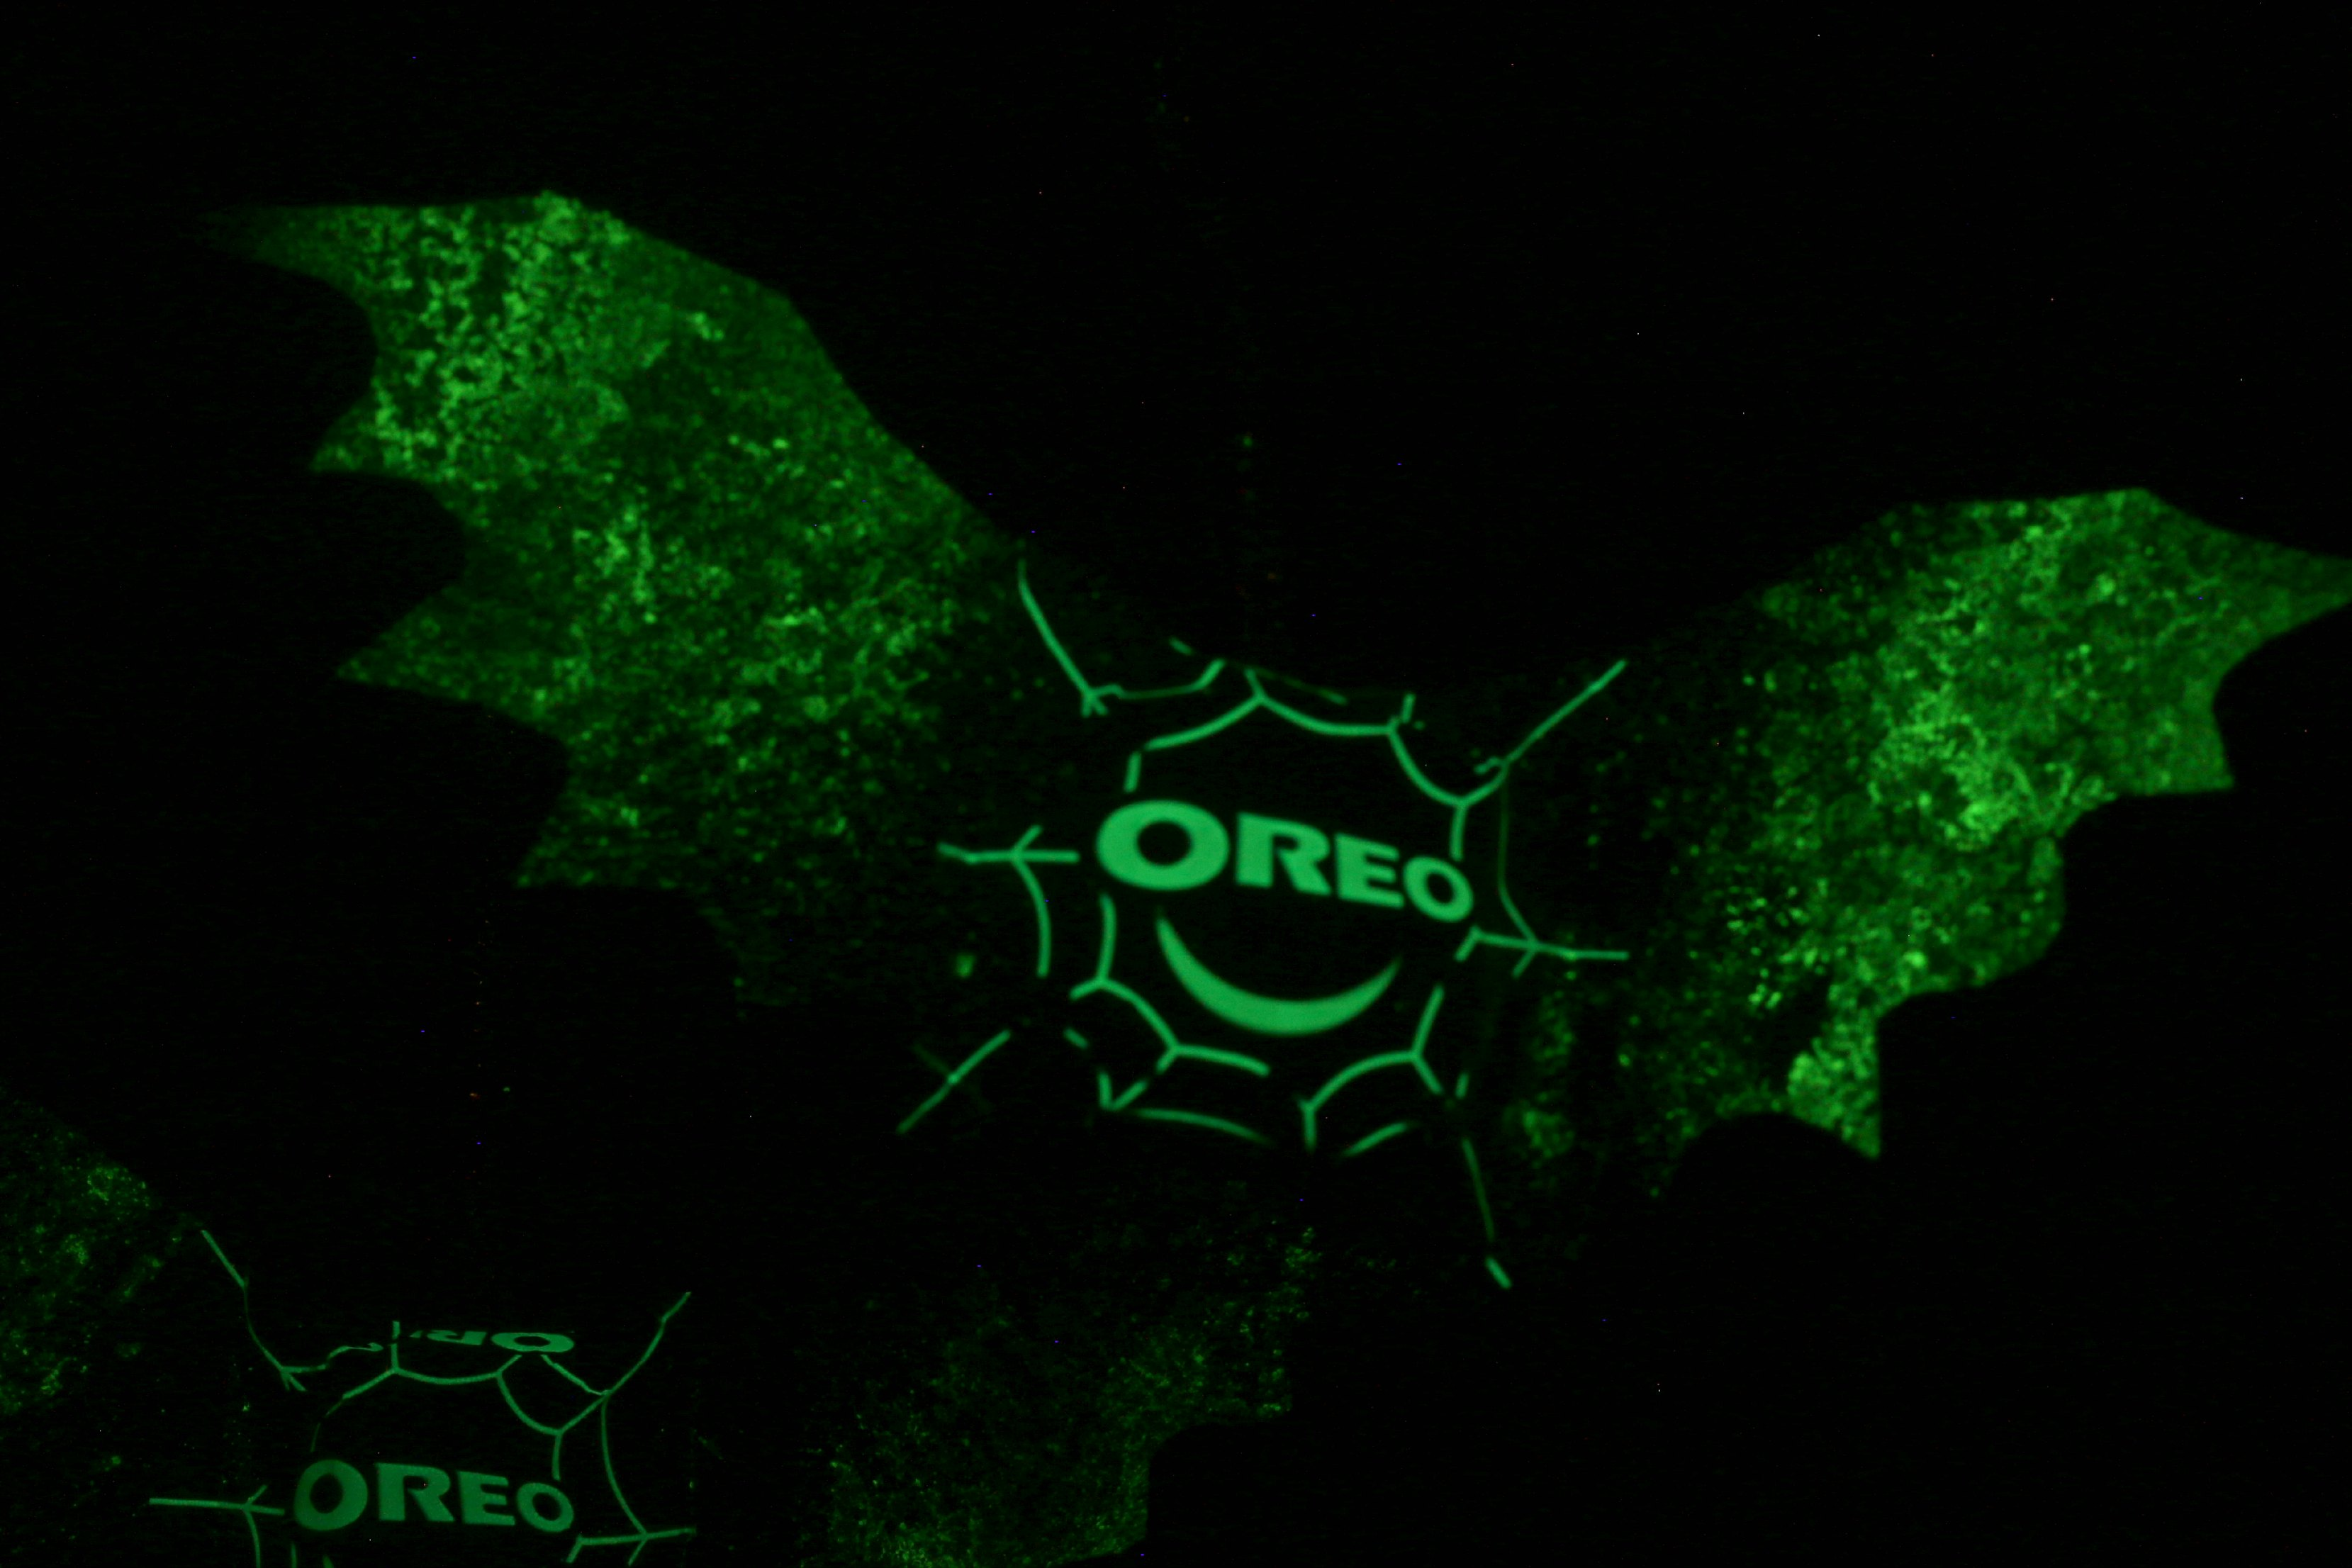 oreo glow in the dark bats